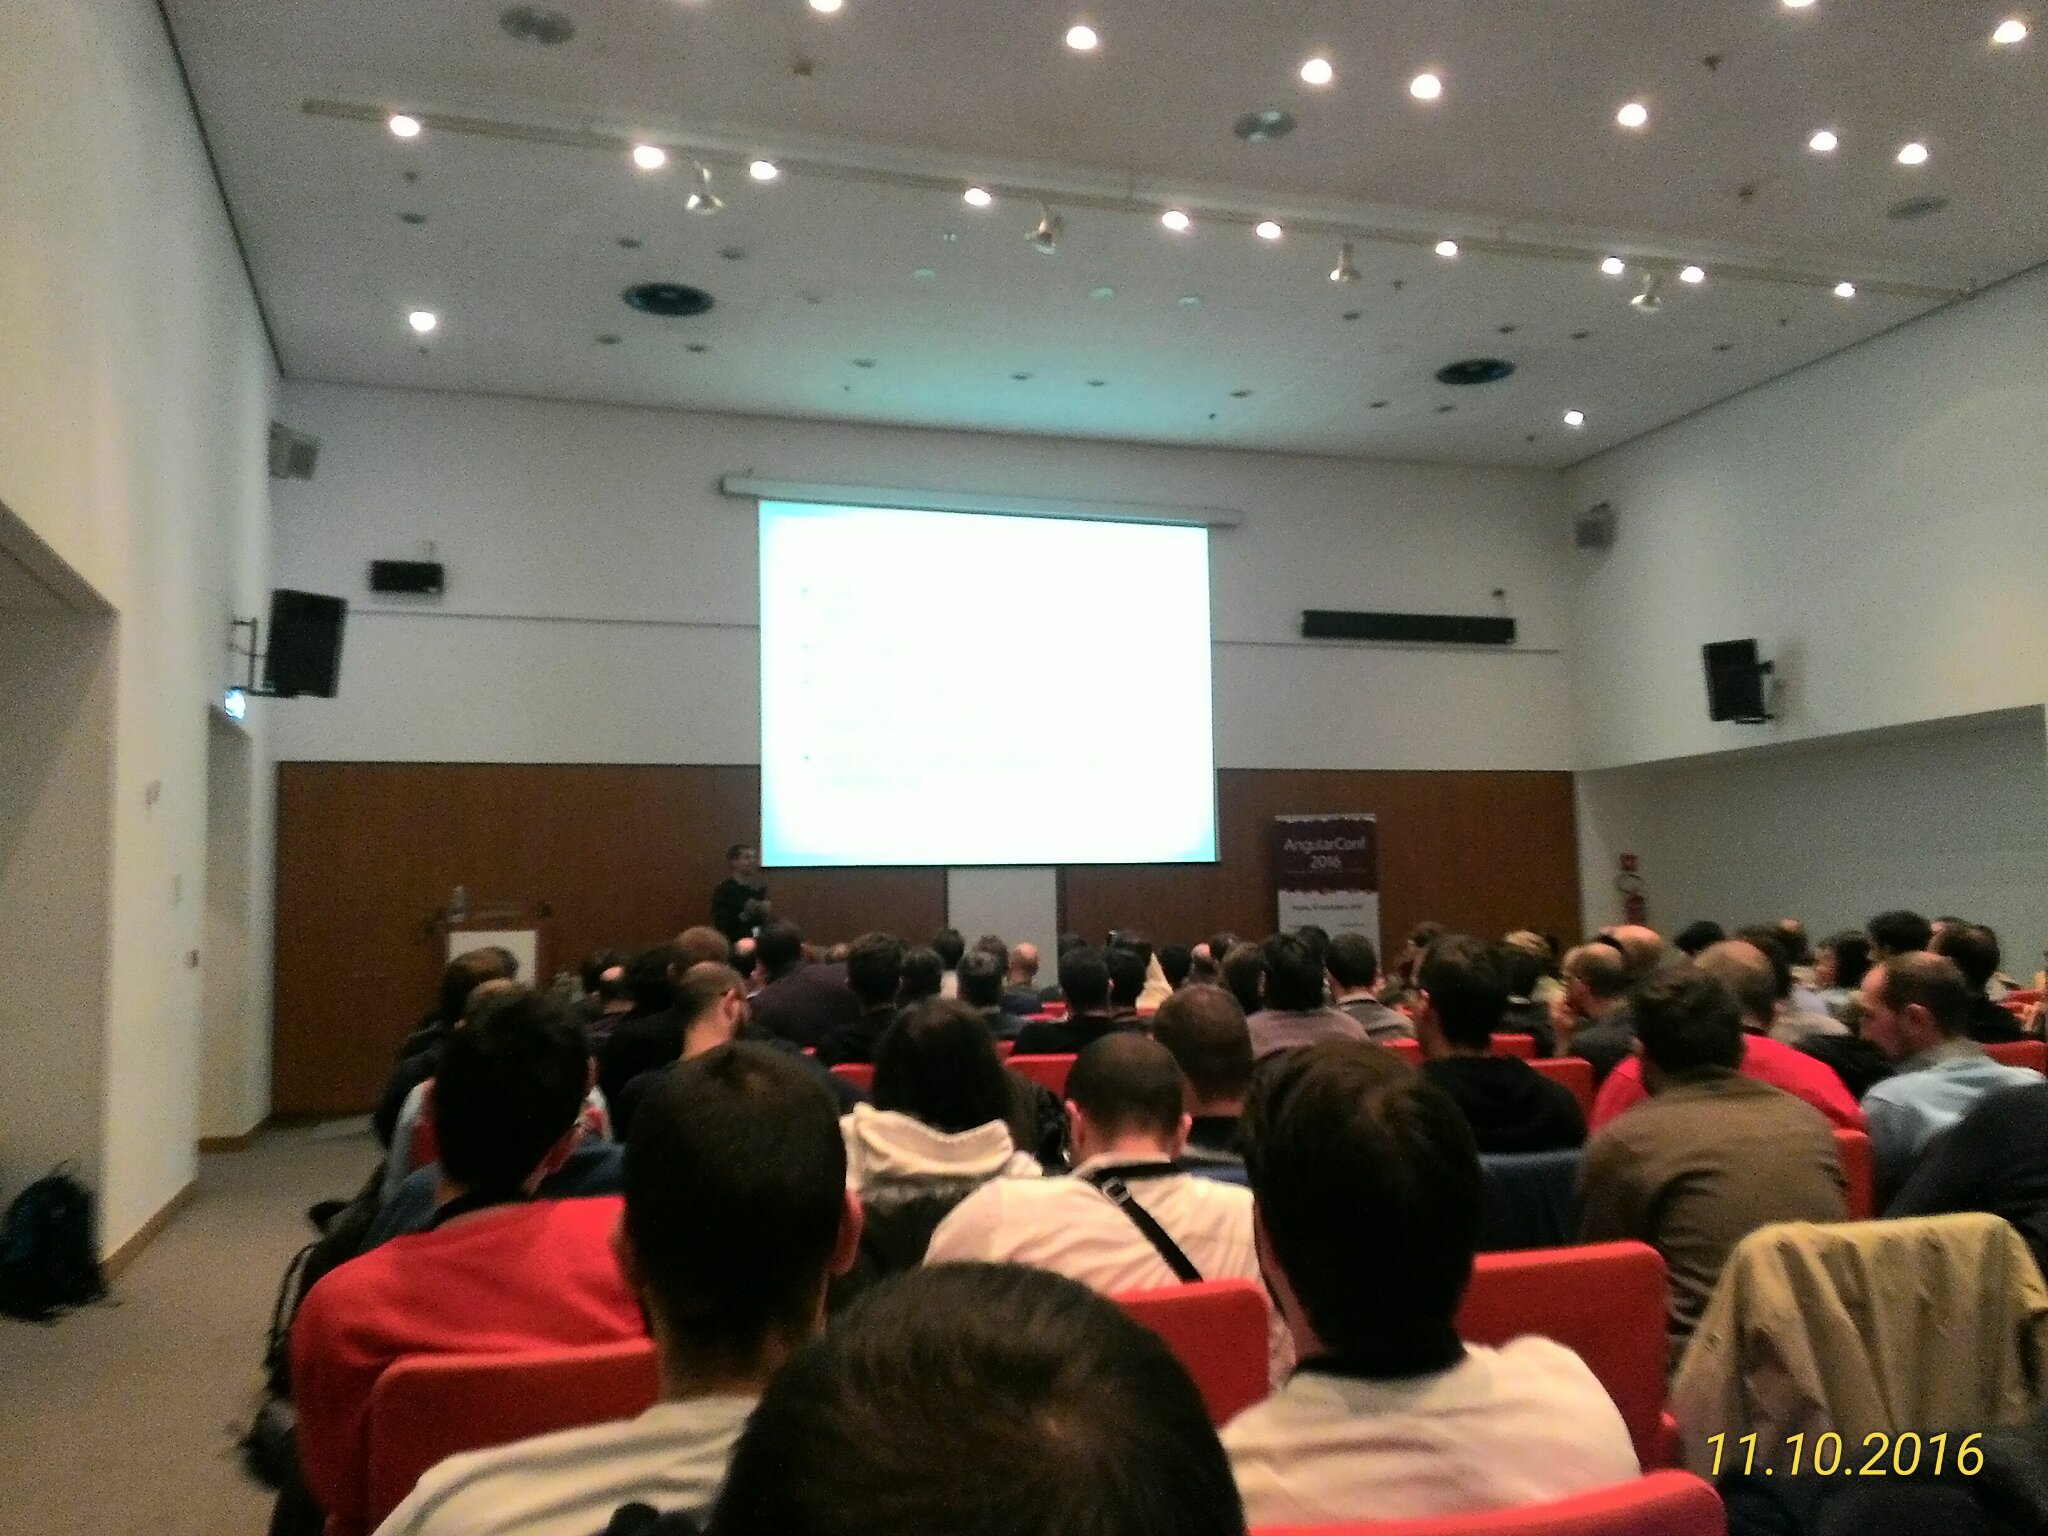 Lato oscuro del frontend ops @cef62 @intre_it  #angularconf16 https://t.co/veCXsSXxKd